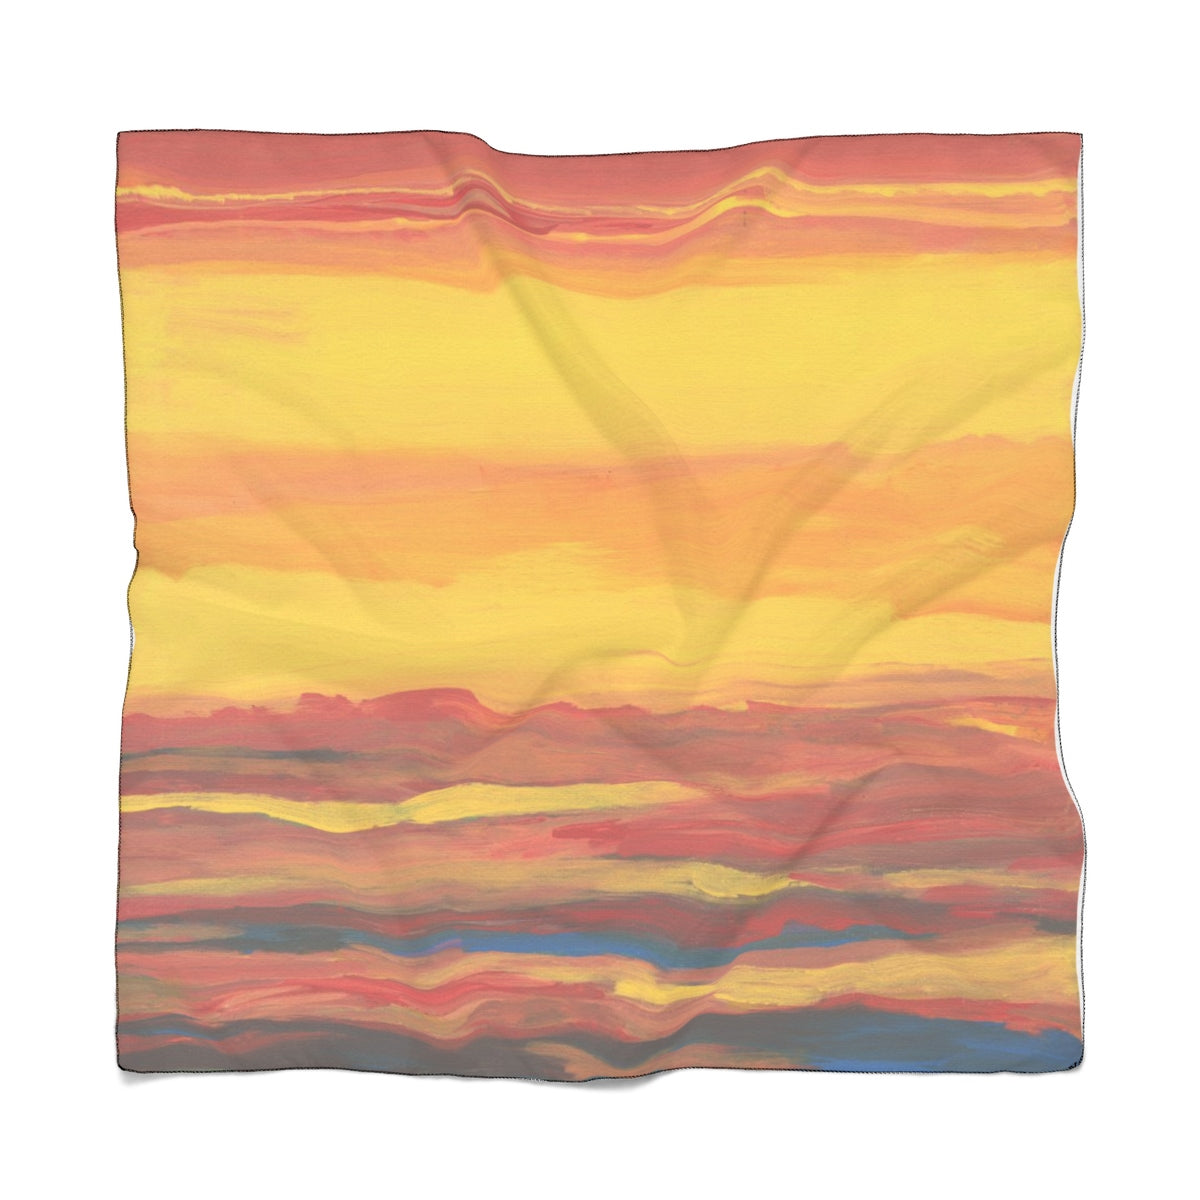 "SUNRISE SUNSET Poly VOILE Scarf  25"" x 25"""